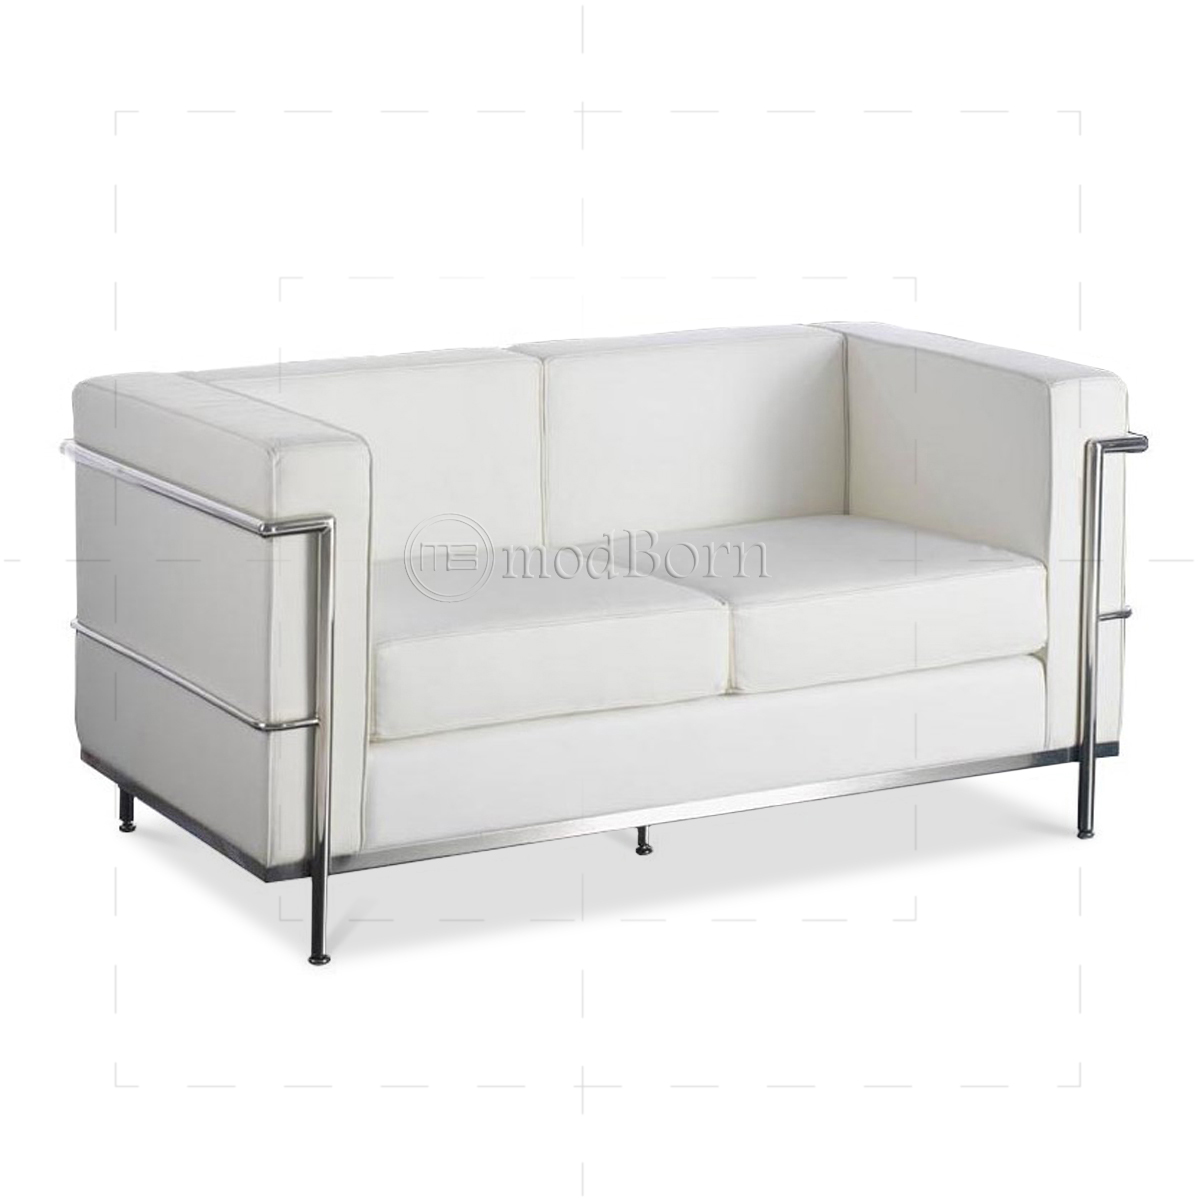 Le corbusier style lc2 sofa 2 seater white leather Le corbusier lc2 sofa